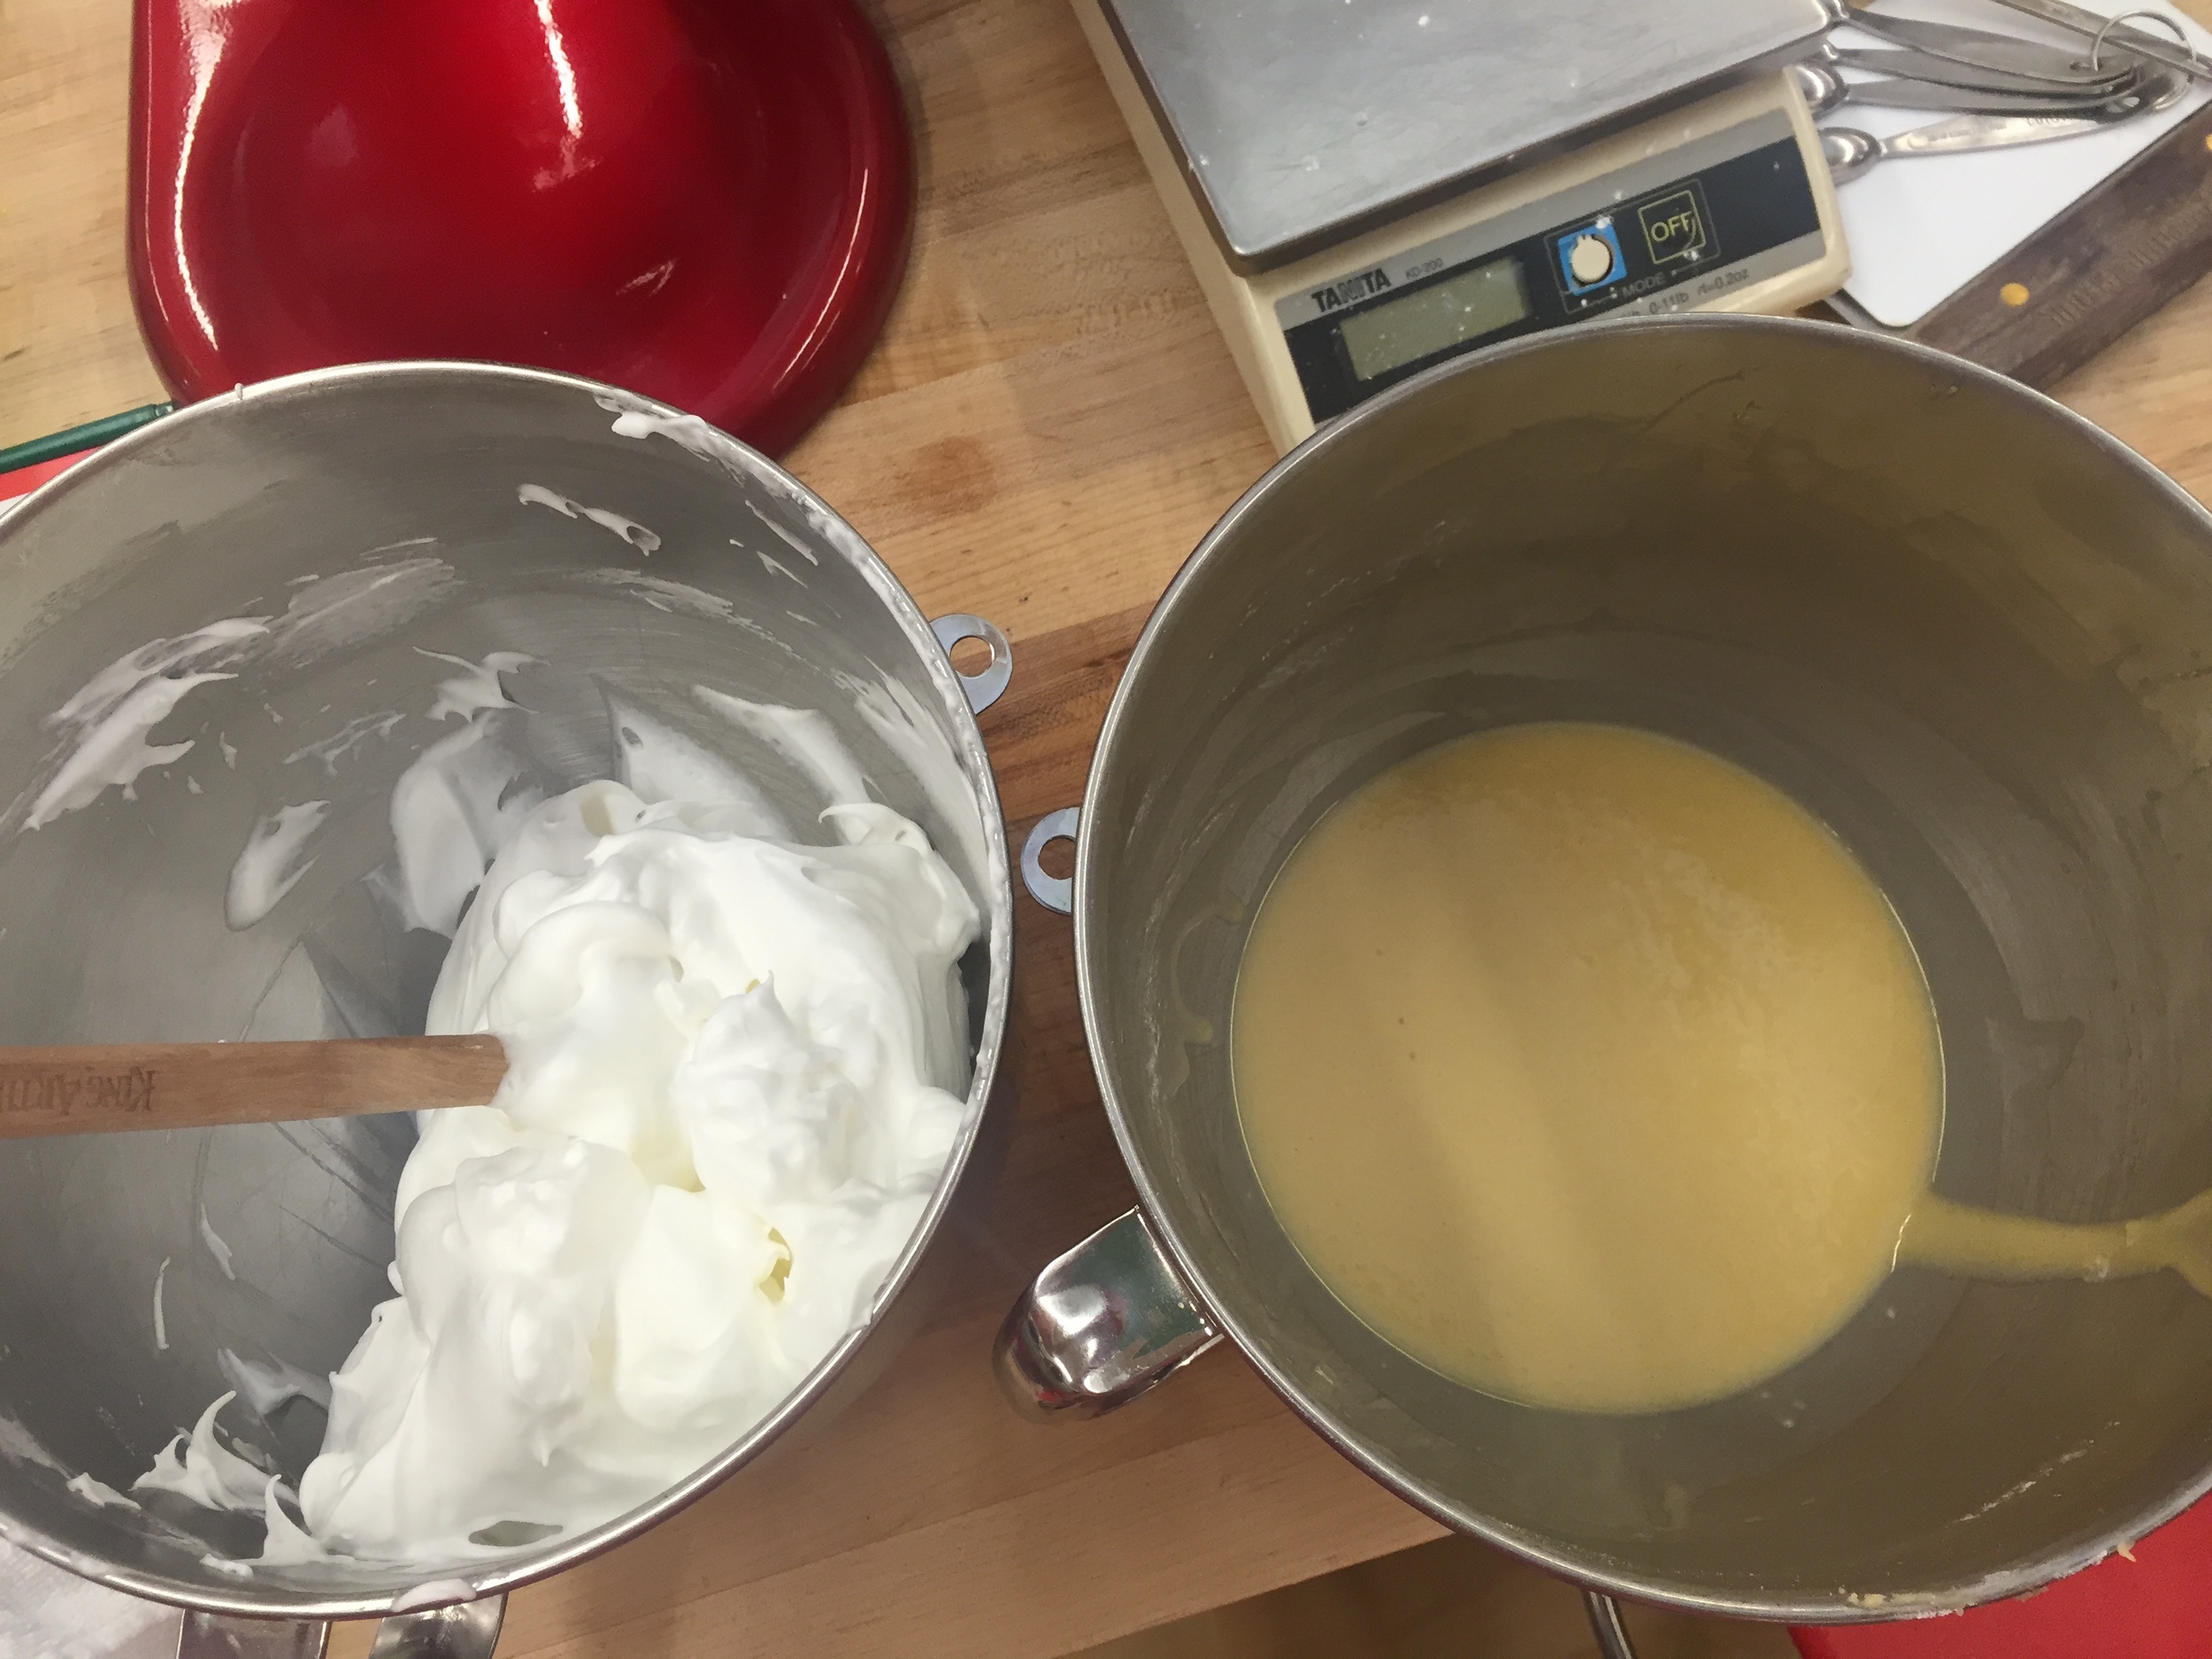 Chiffon cake in-the-making:egg white meringue on the left to be folded into oil/egg/flour batter on the right